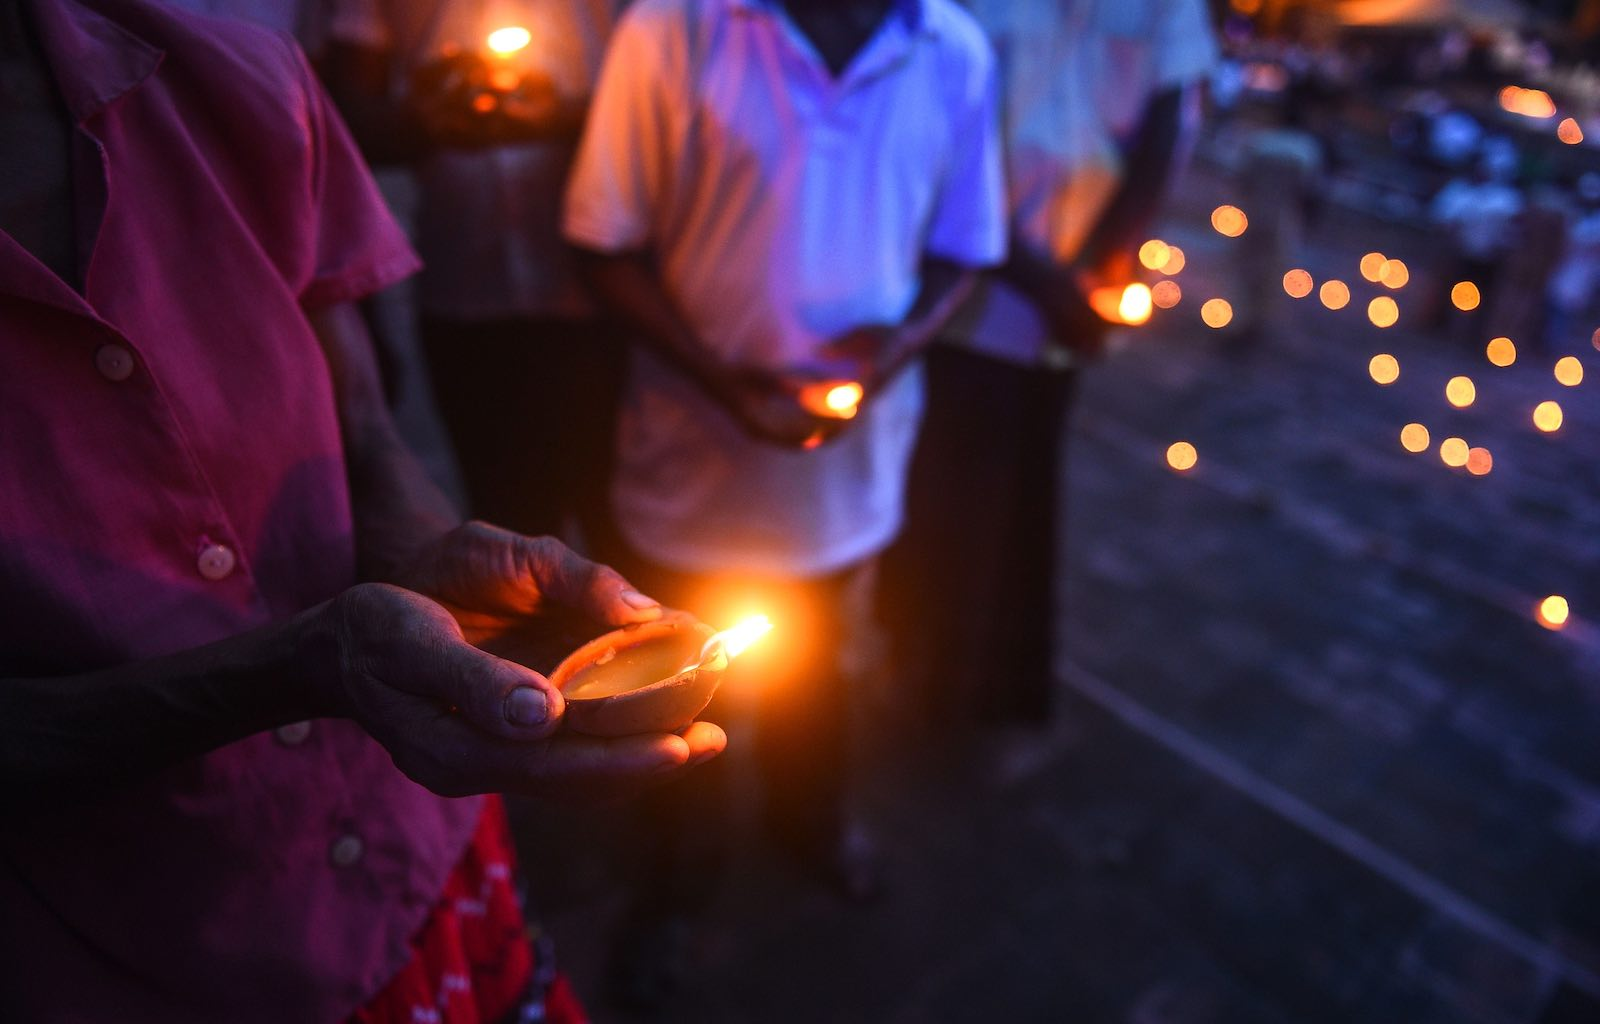 A remembrance ceremony in Colombo in June, two months after the Easter Sunday bombings that killed 258 people (Photo: Ishara S. Kodikara via Getty)